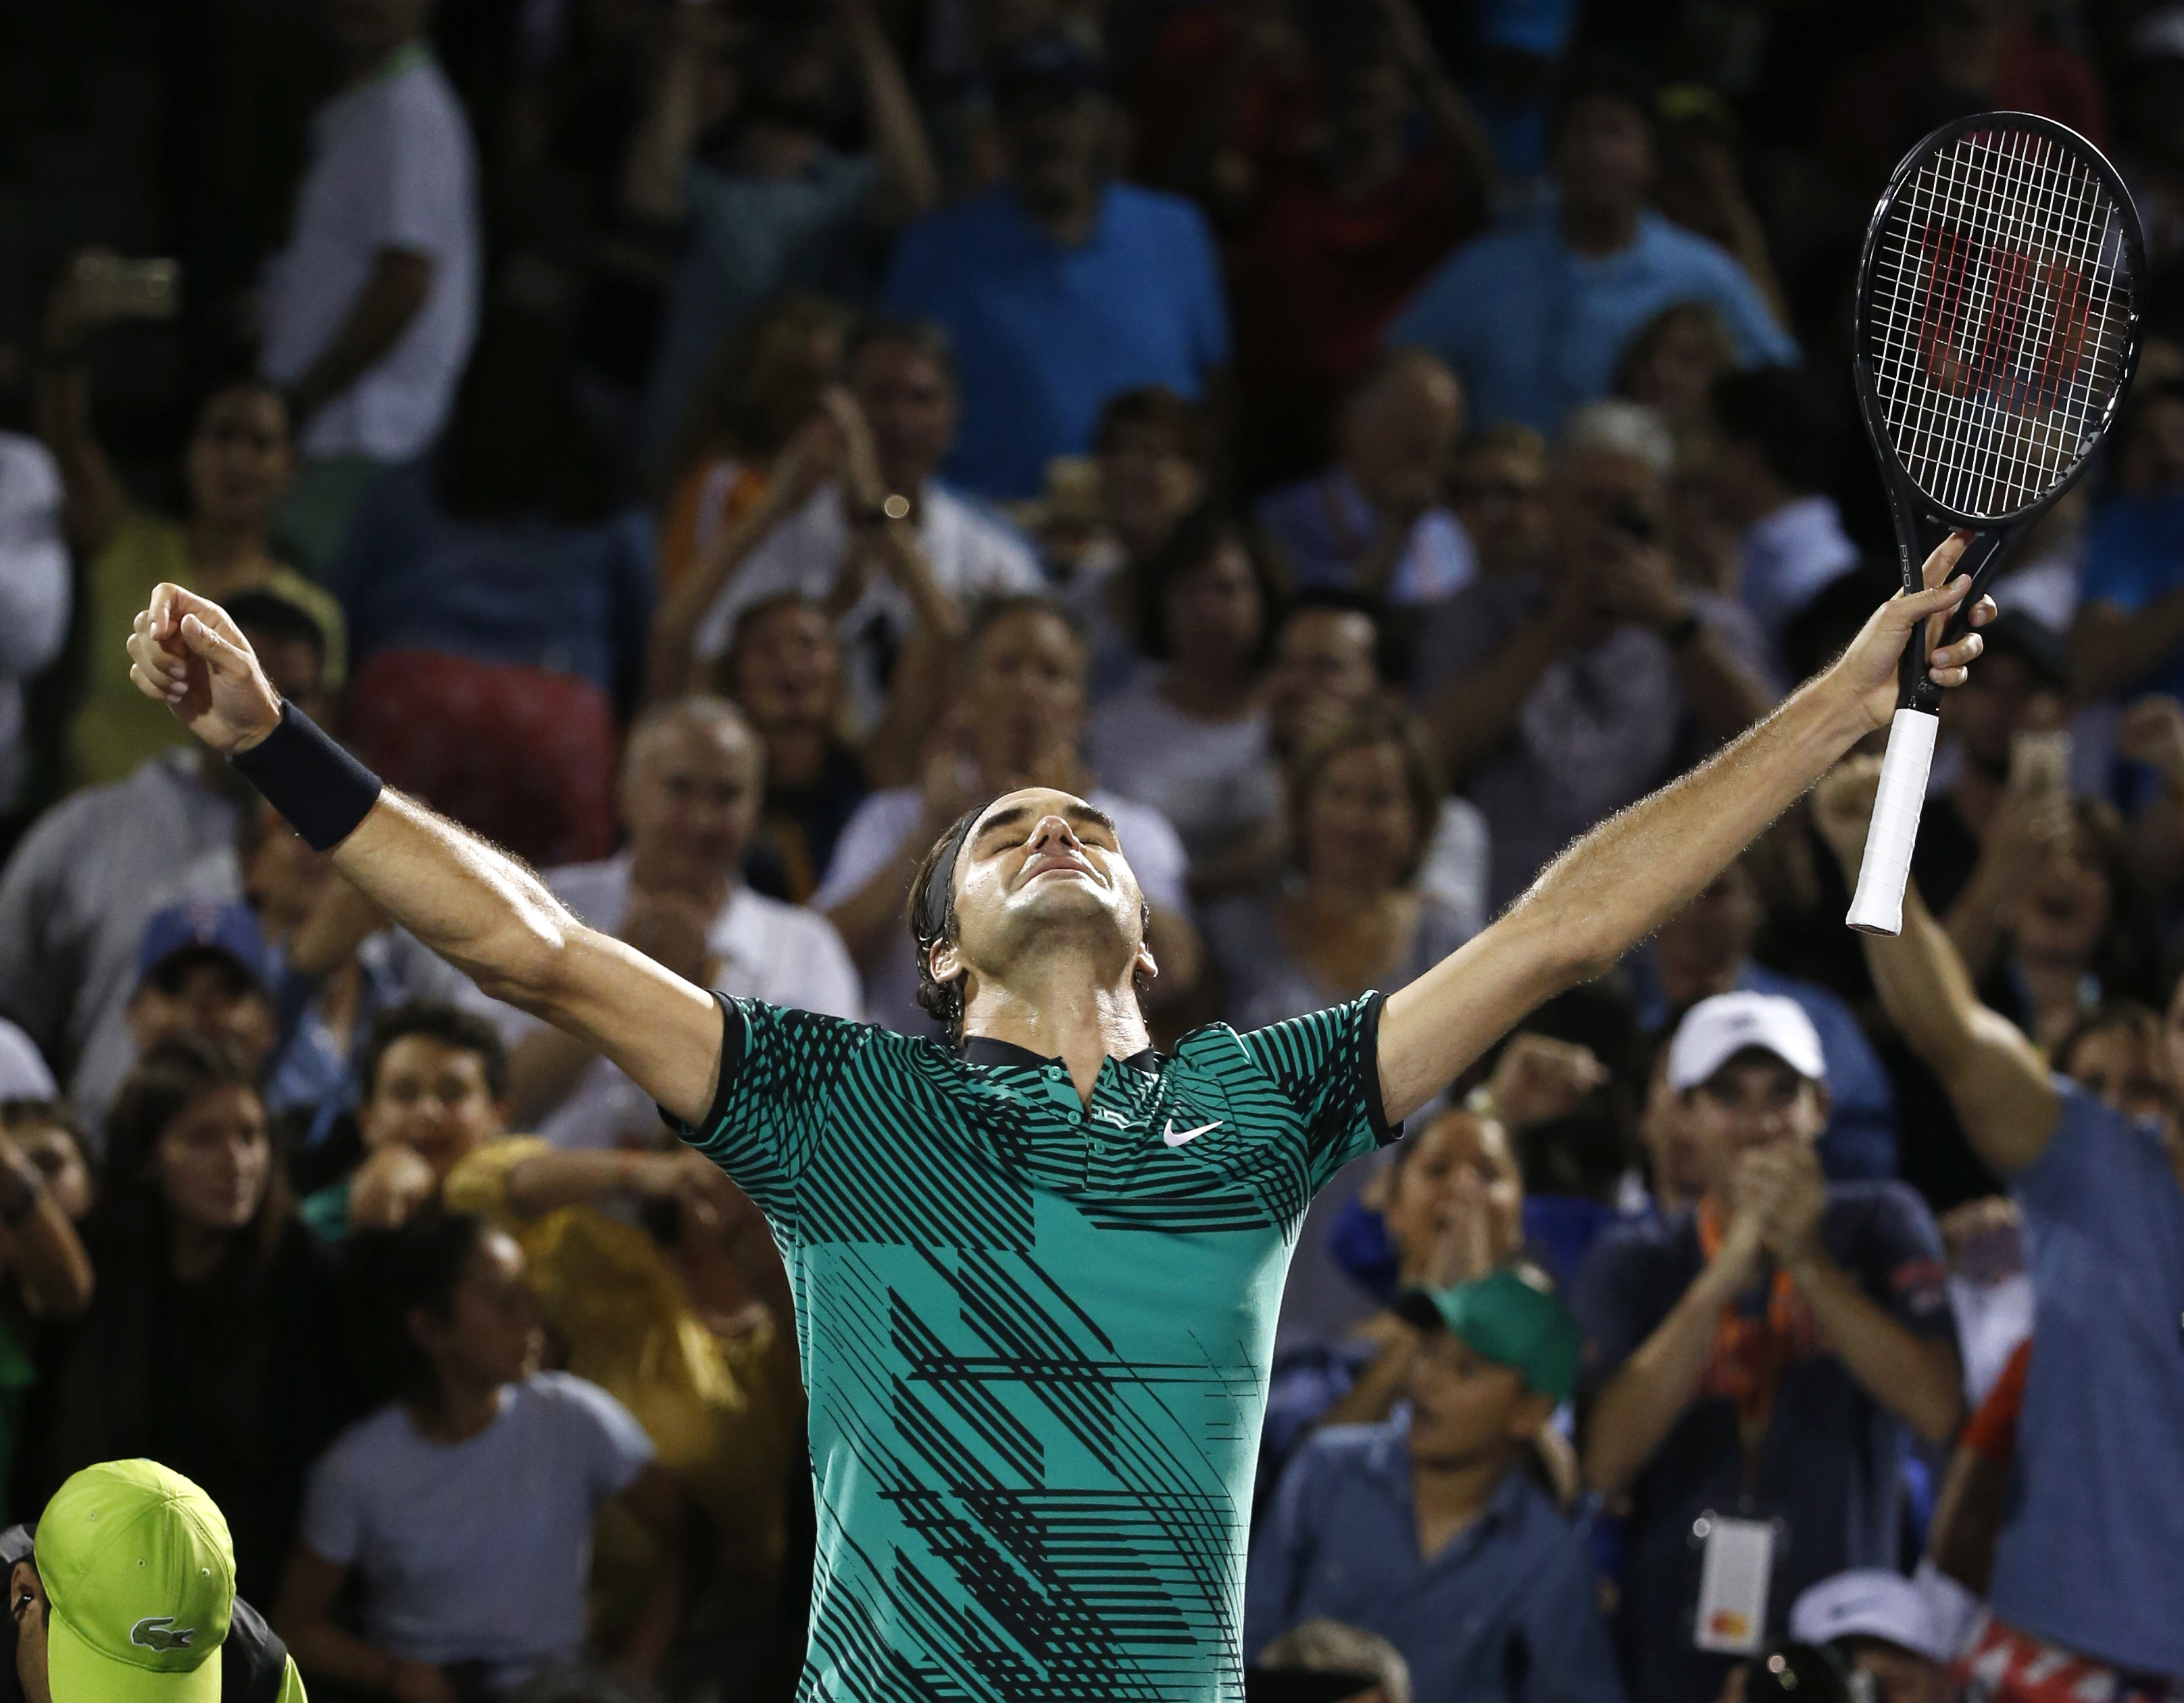 FILE - In this March 31, 2017, file photo, Roger Federer, of Switzerland, celebrates after defeating Nick Kyrgios, of Australia, in a tennis match at the Miami Open, in Key Biscayne, Fla. Federer extended his record with an 18th major championship in Aust